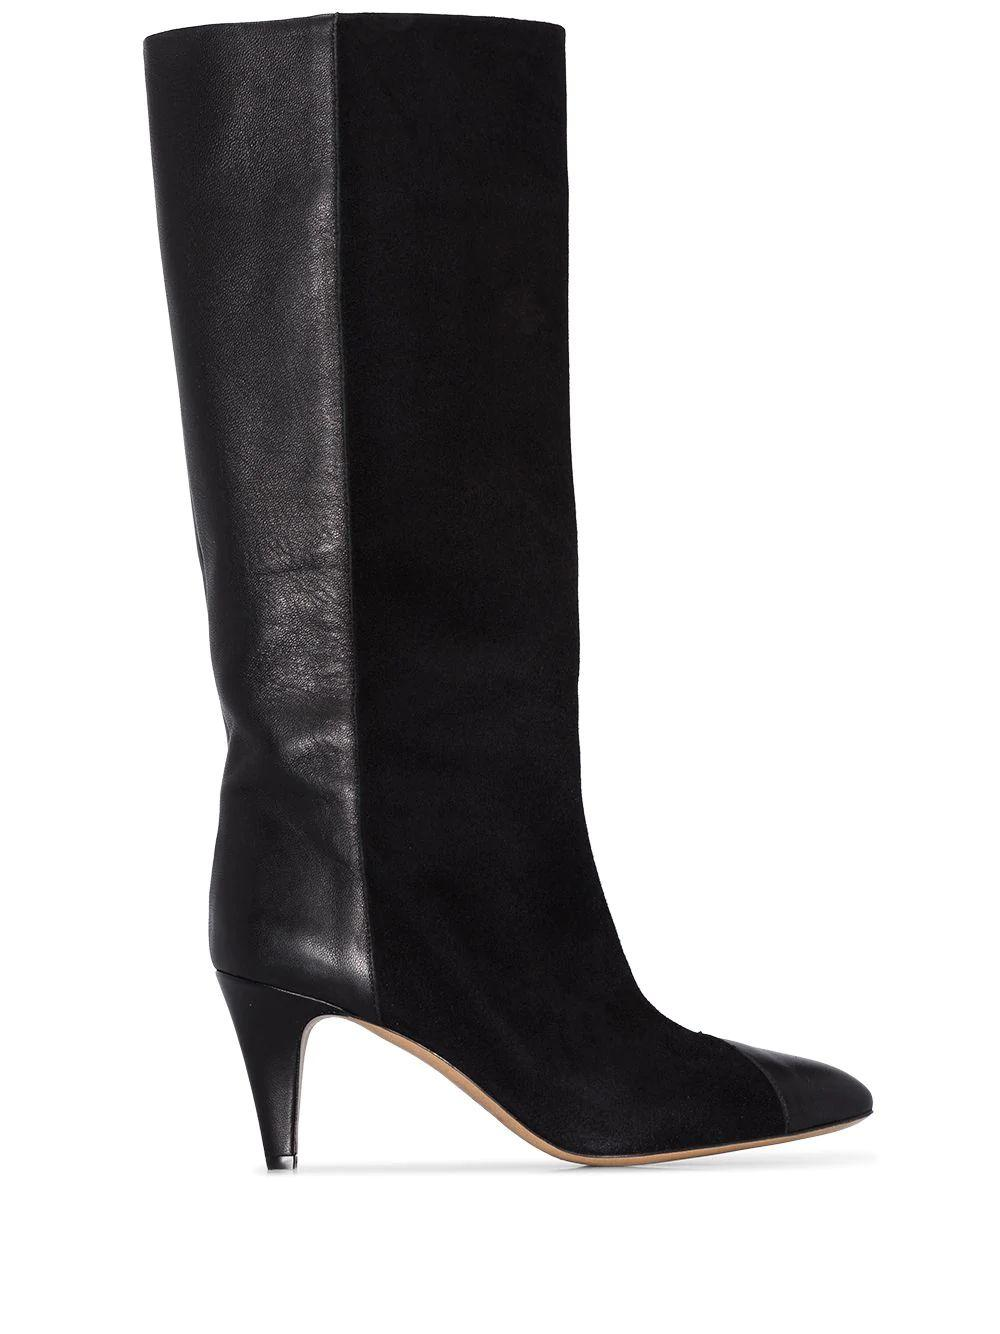 Leas Leather And Velvet Boot Item # LEAS